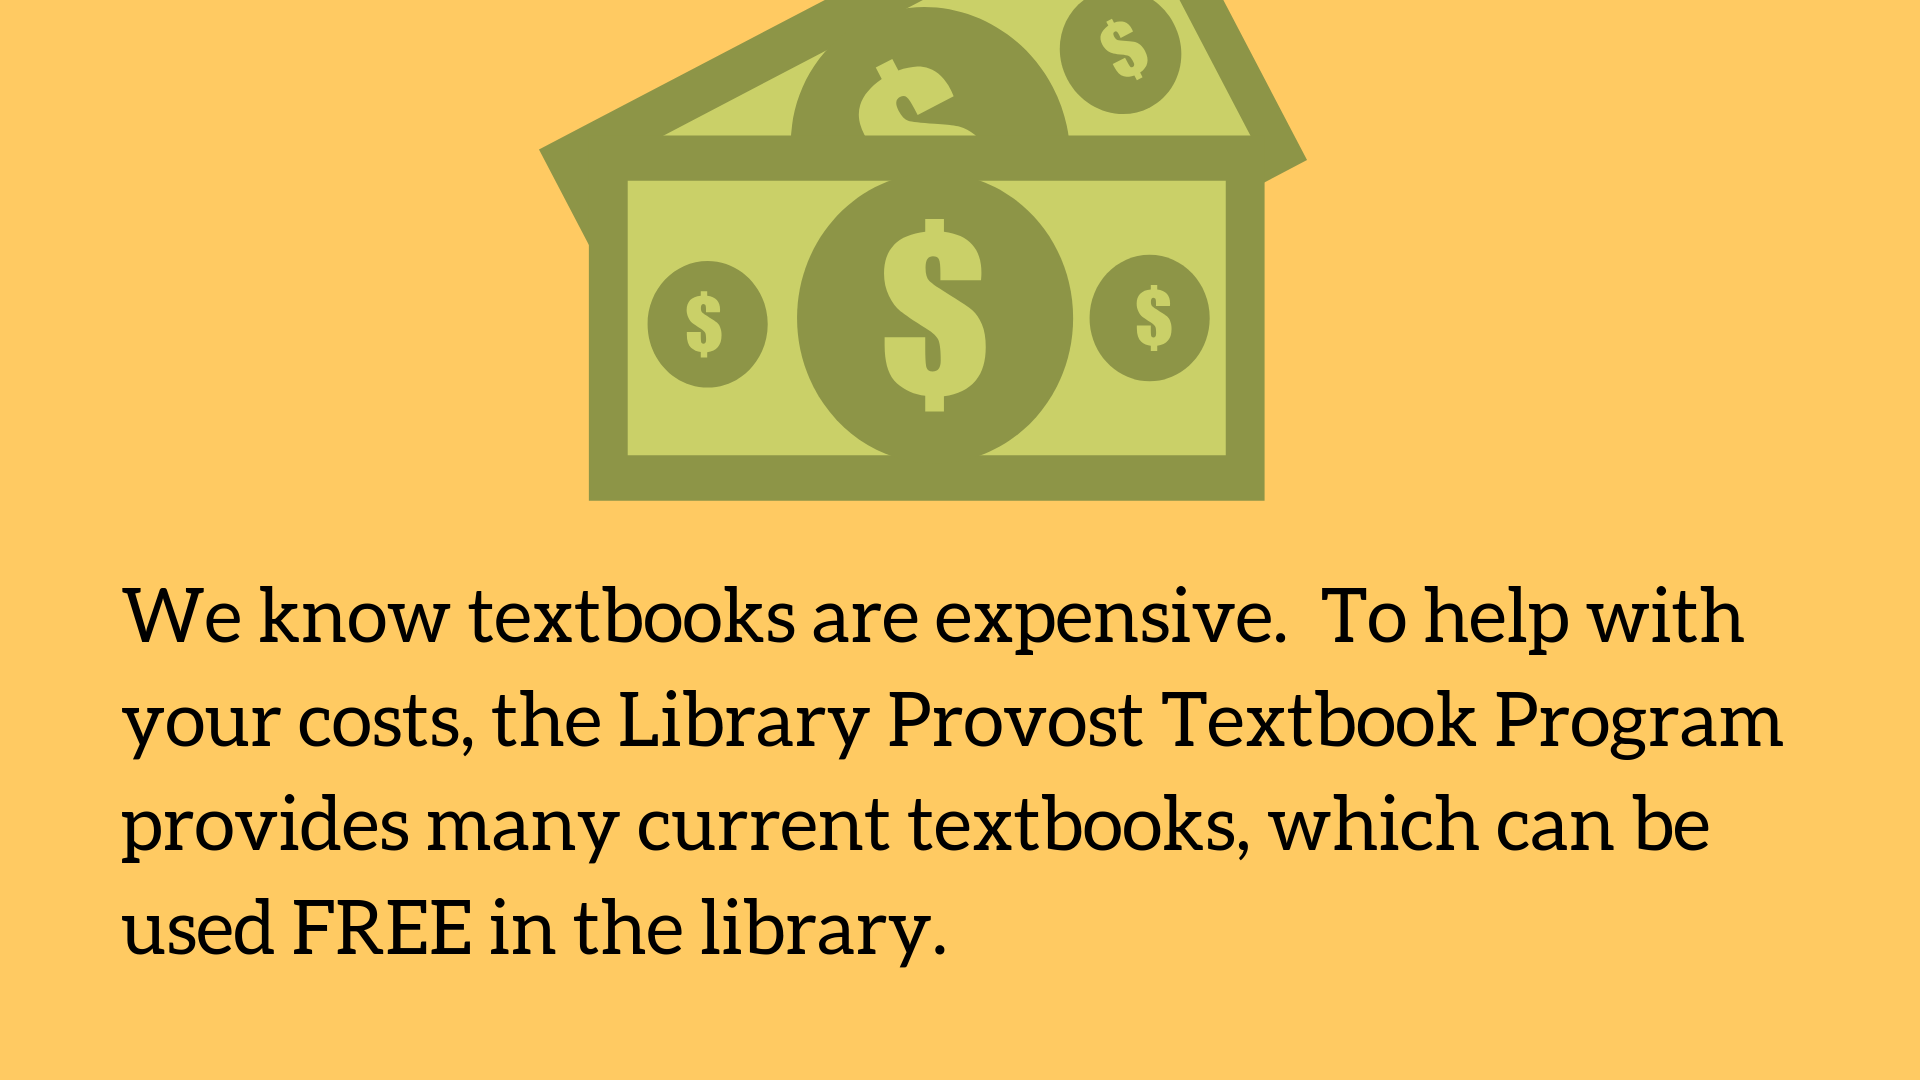 We know textbooks are expensive.  To help with your costs, the Library Provost Textbook Program provides many current textbooks, which can be used FREE in the library.